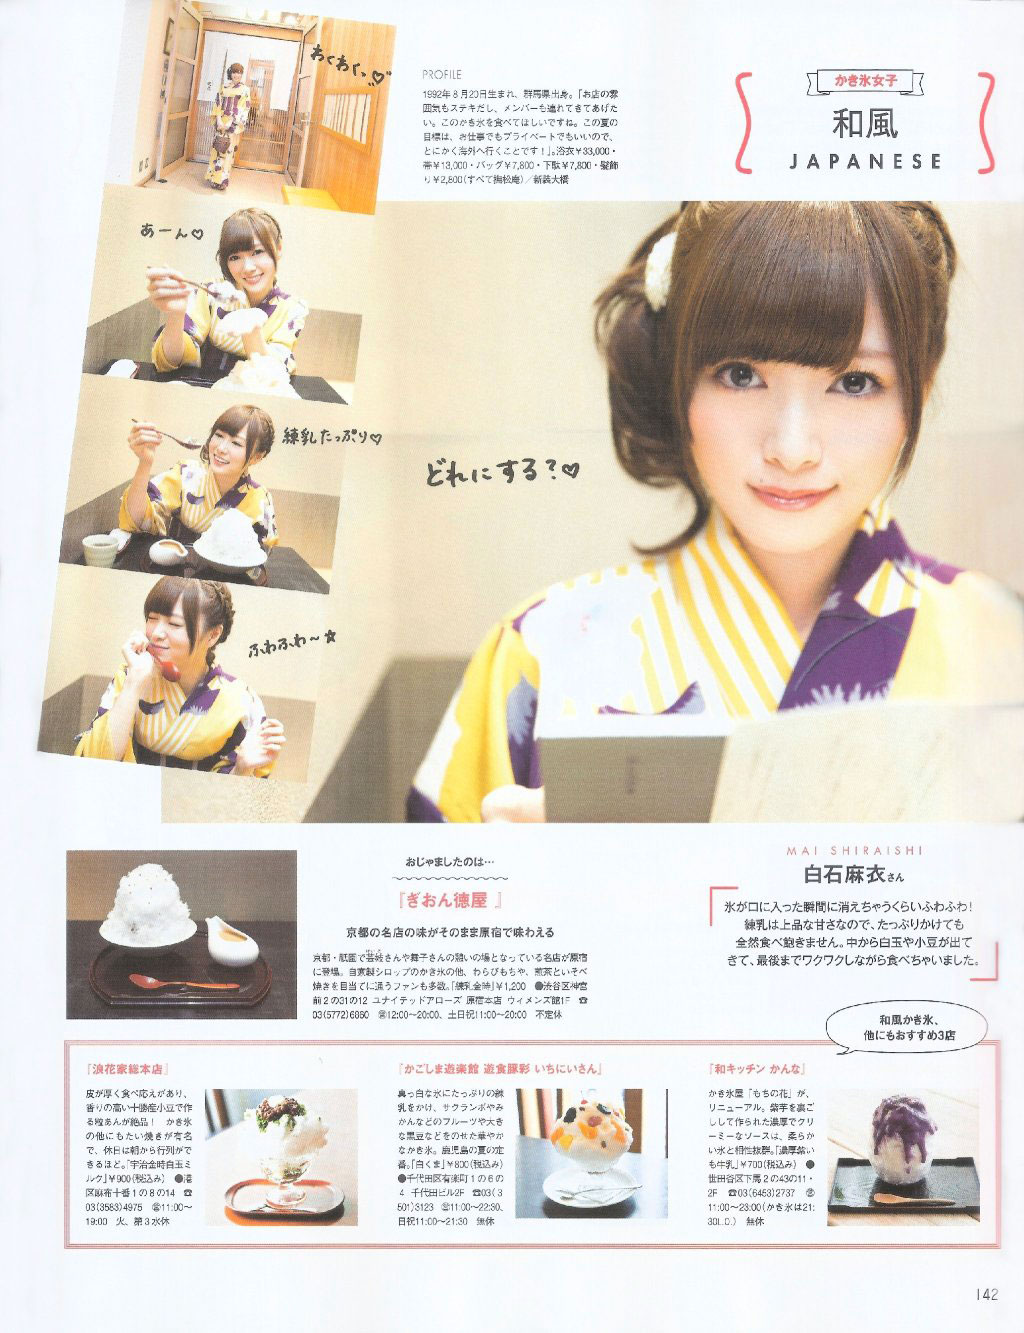 Nogizaka46 Mai Shiraishi Men Non-no Magazine